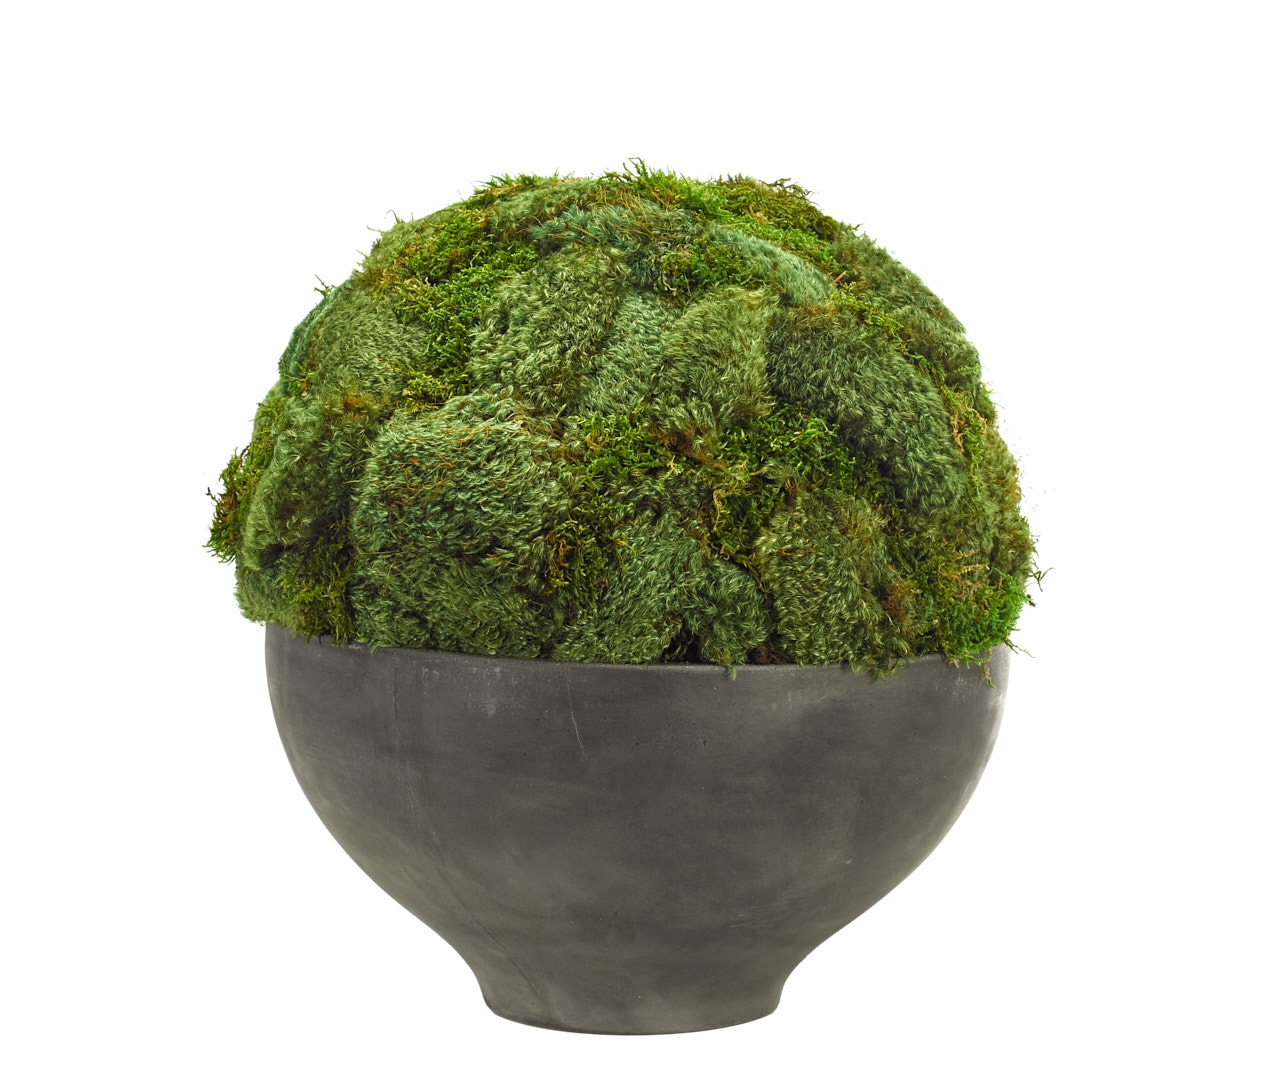 Moss Mound, Bowl Terracotta Grey Finish, 18wx18dx18h